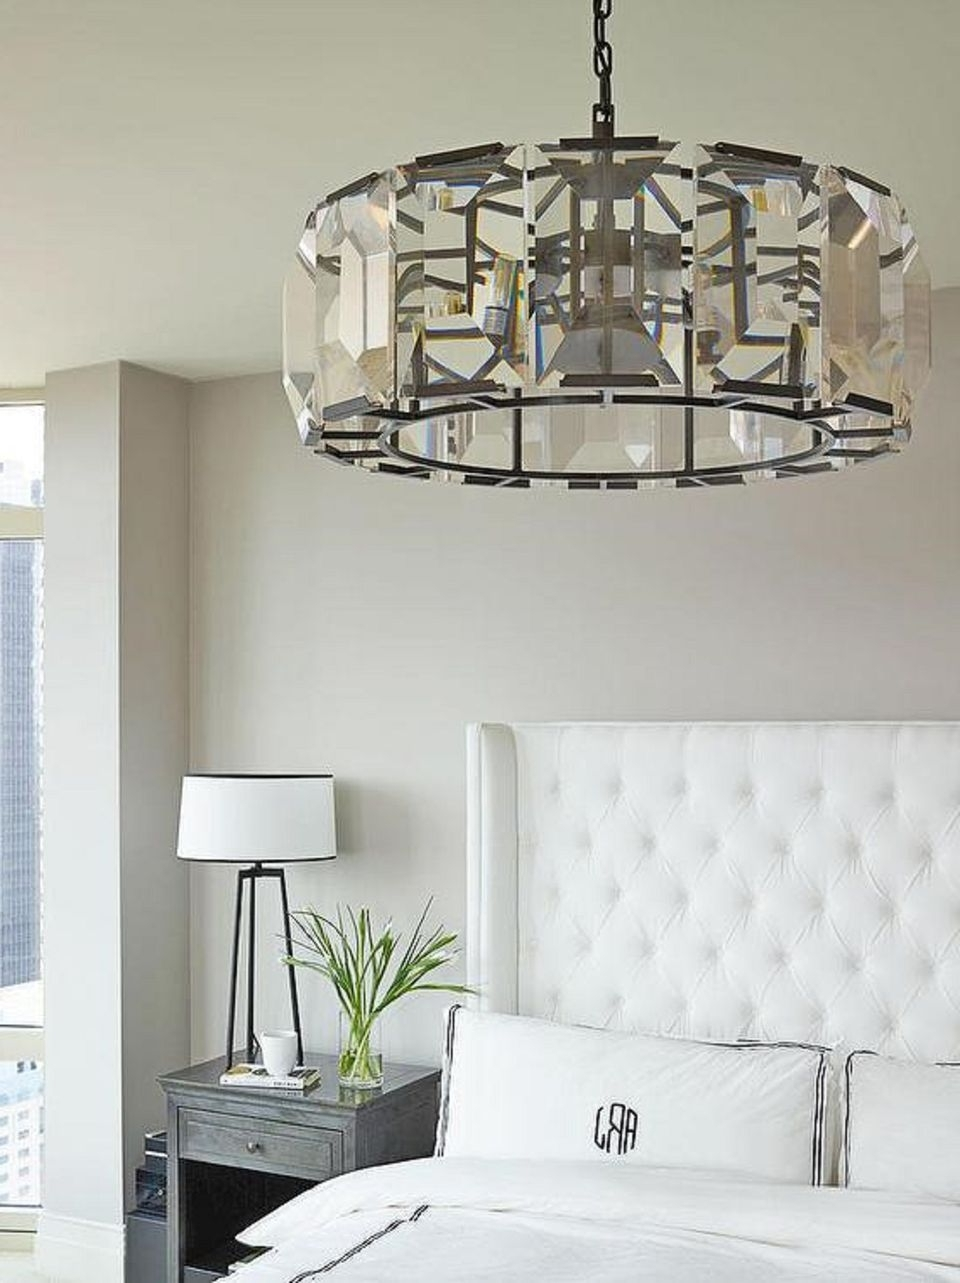 Chandelier Night Stand Lamps For Most Popular 25 Master Bedroom Lighting Ideas (View 6 of 20)